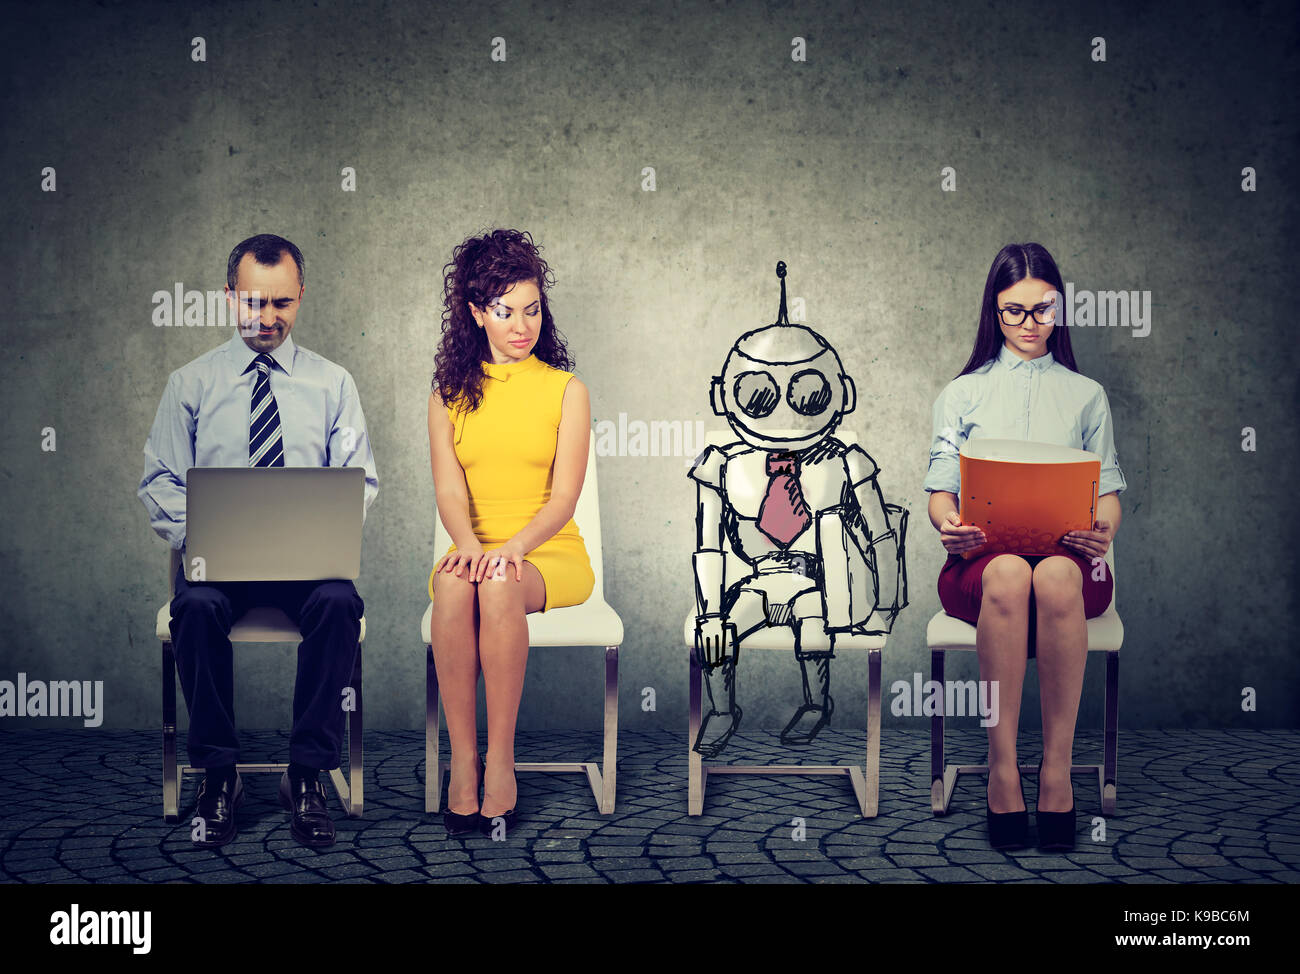 Cartoon robot sitting in line with applicants for a job interview - Stock Image